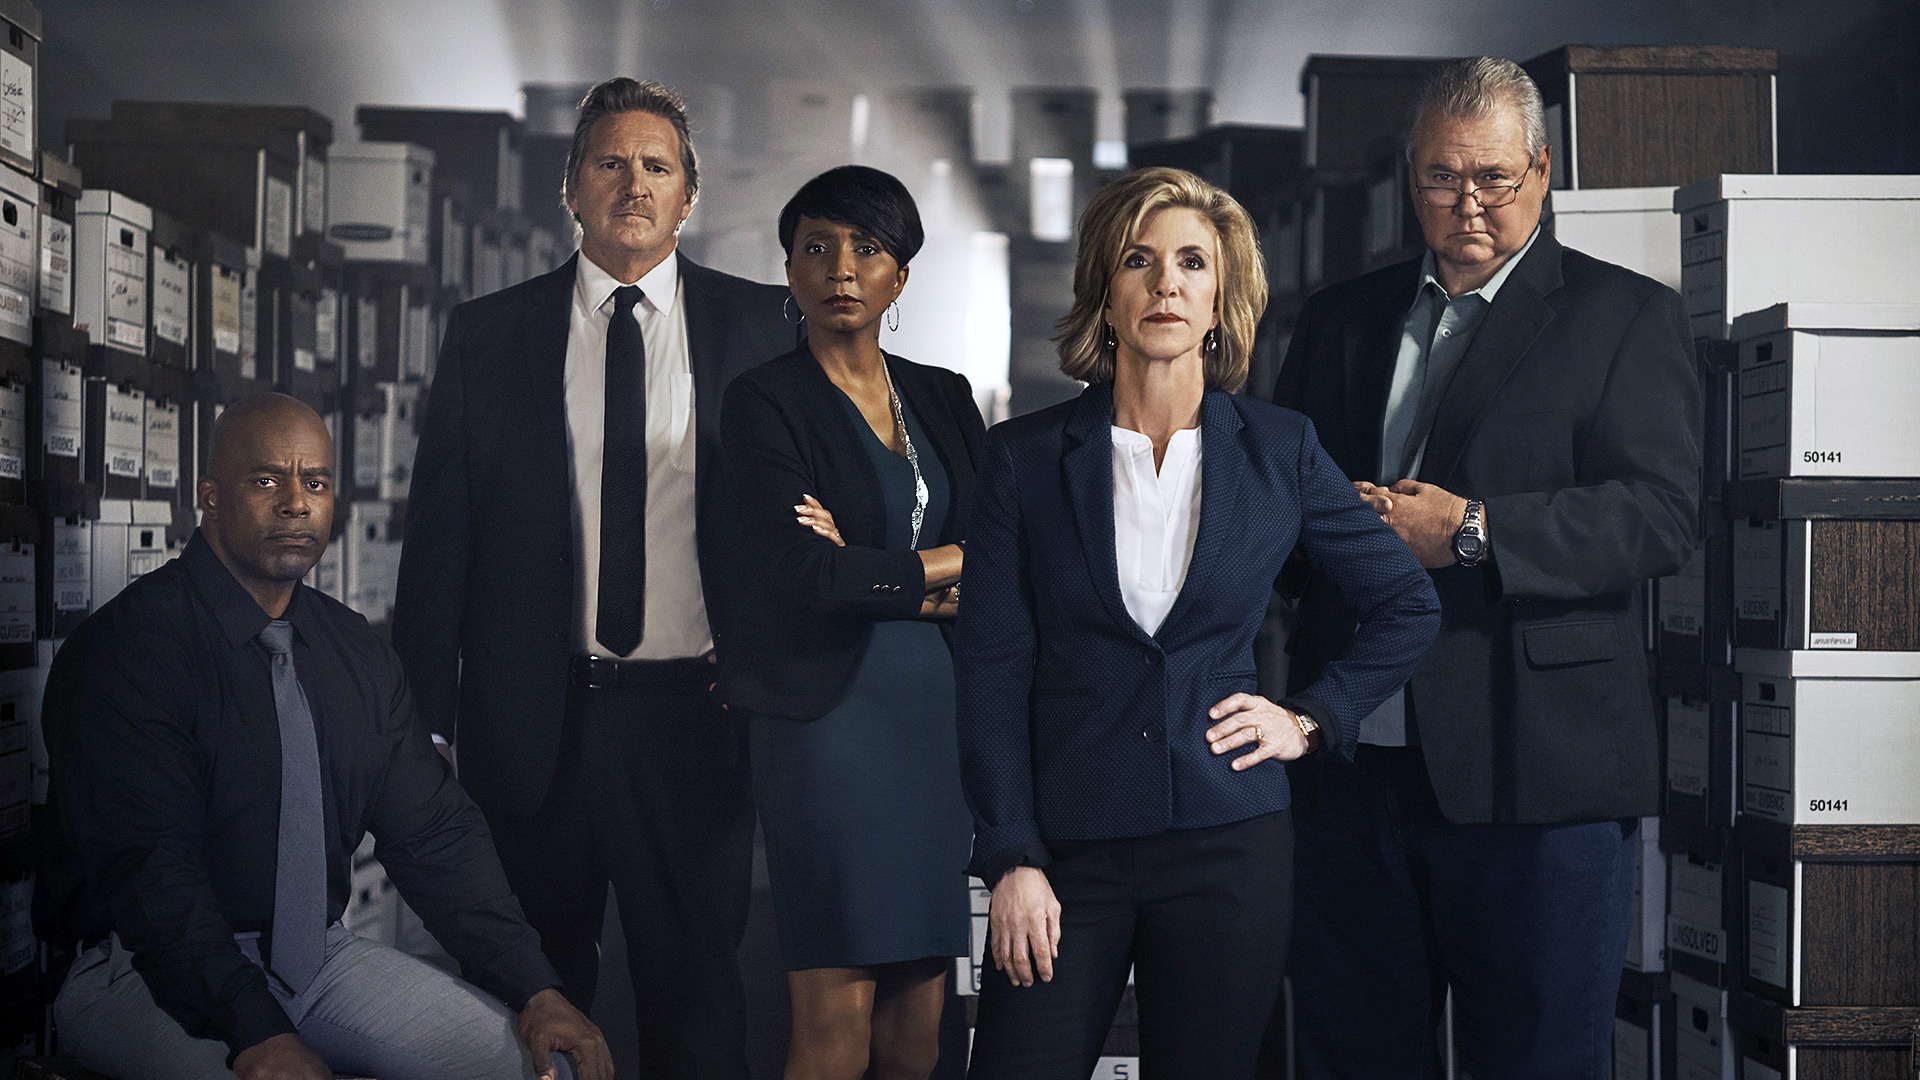 All New Cold Justice Image